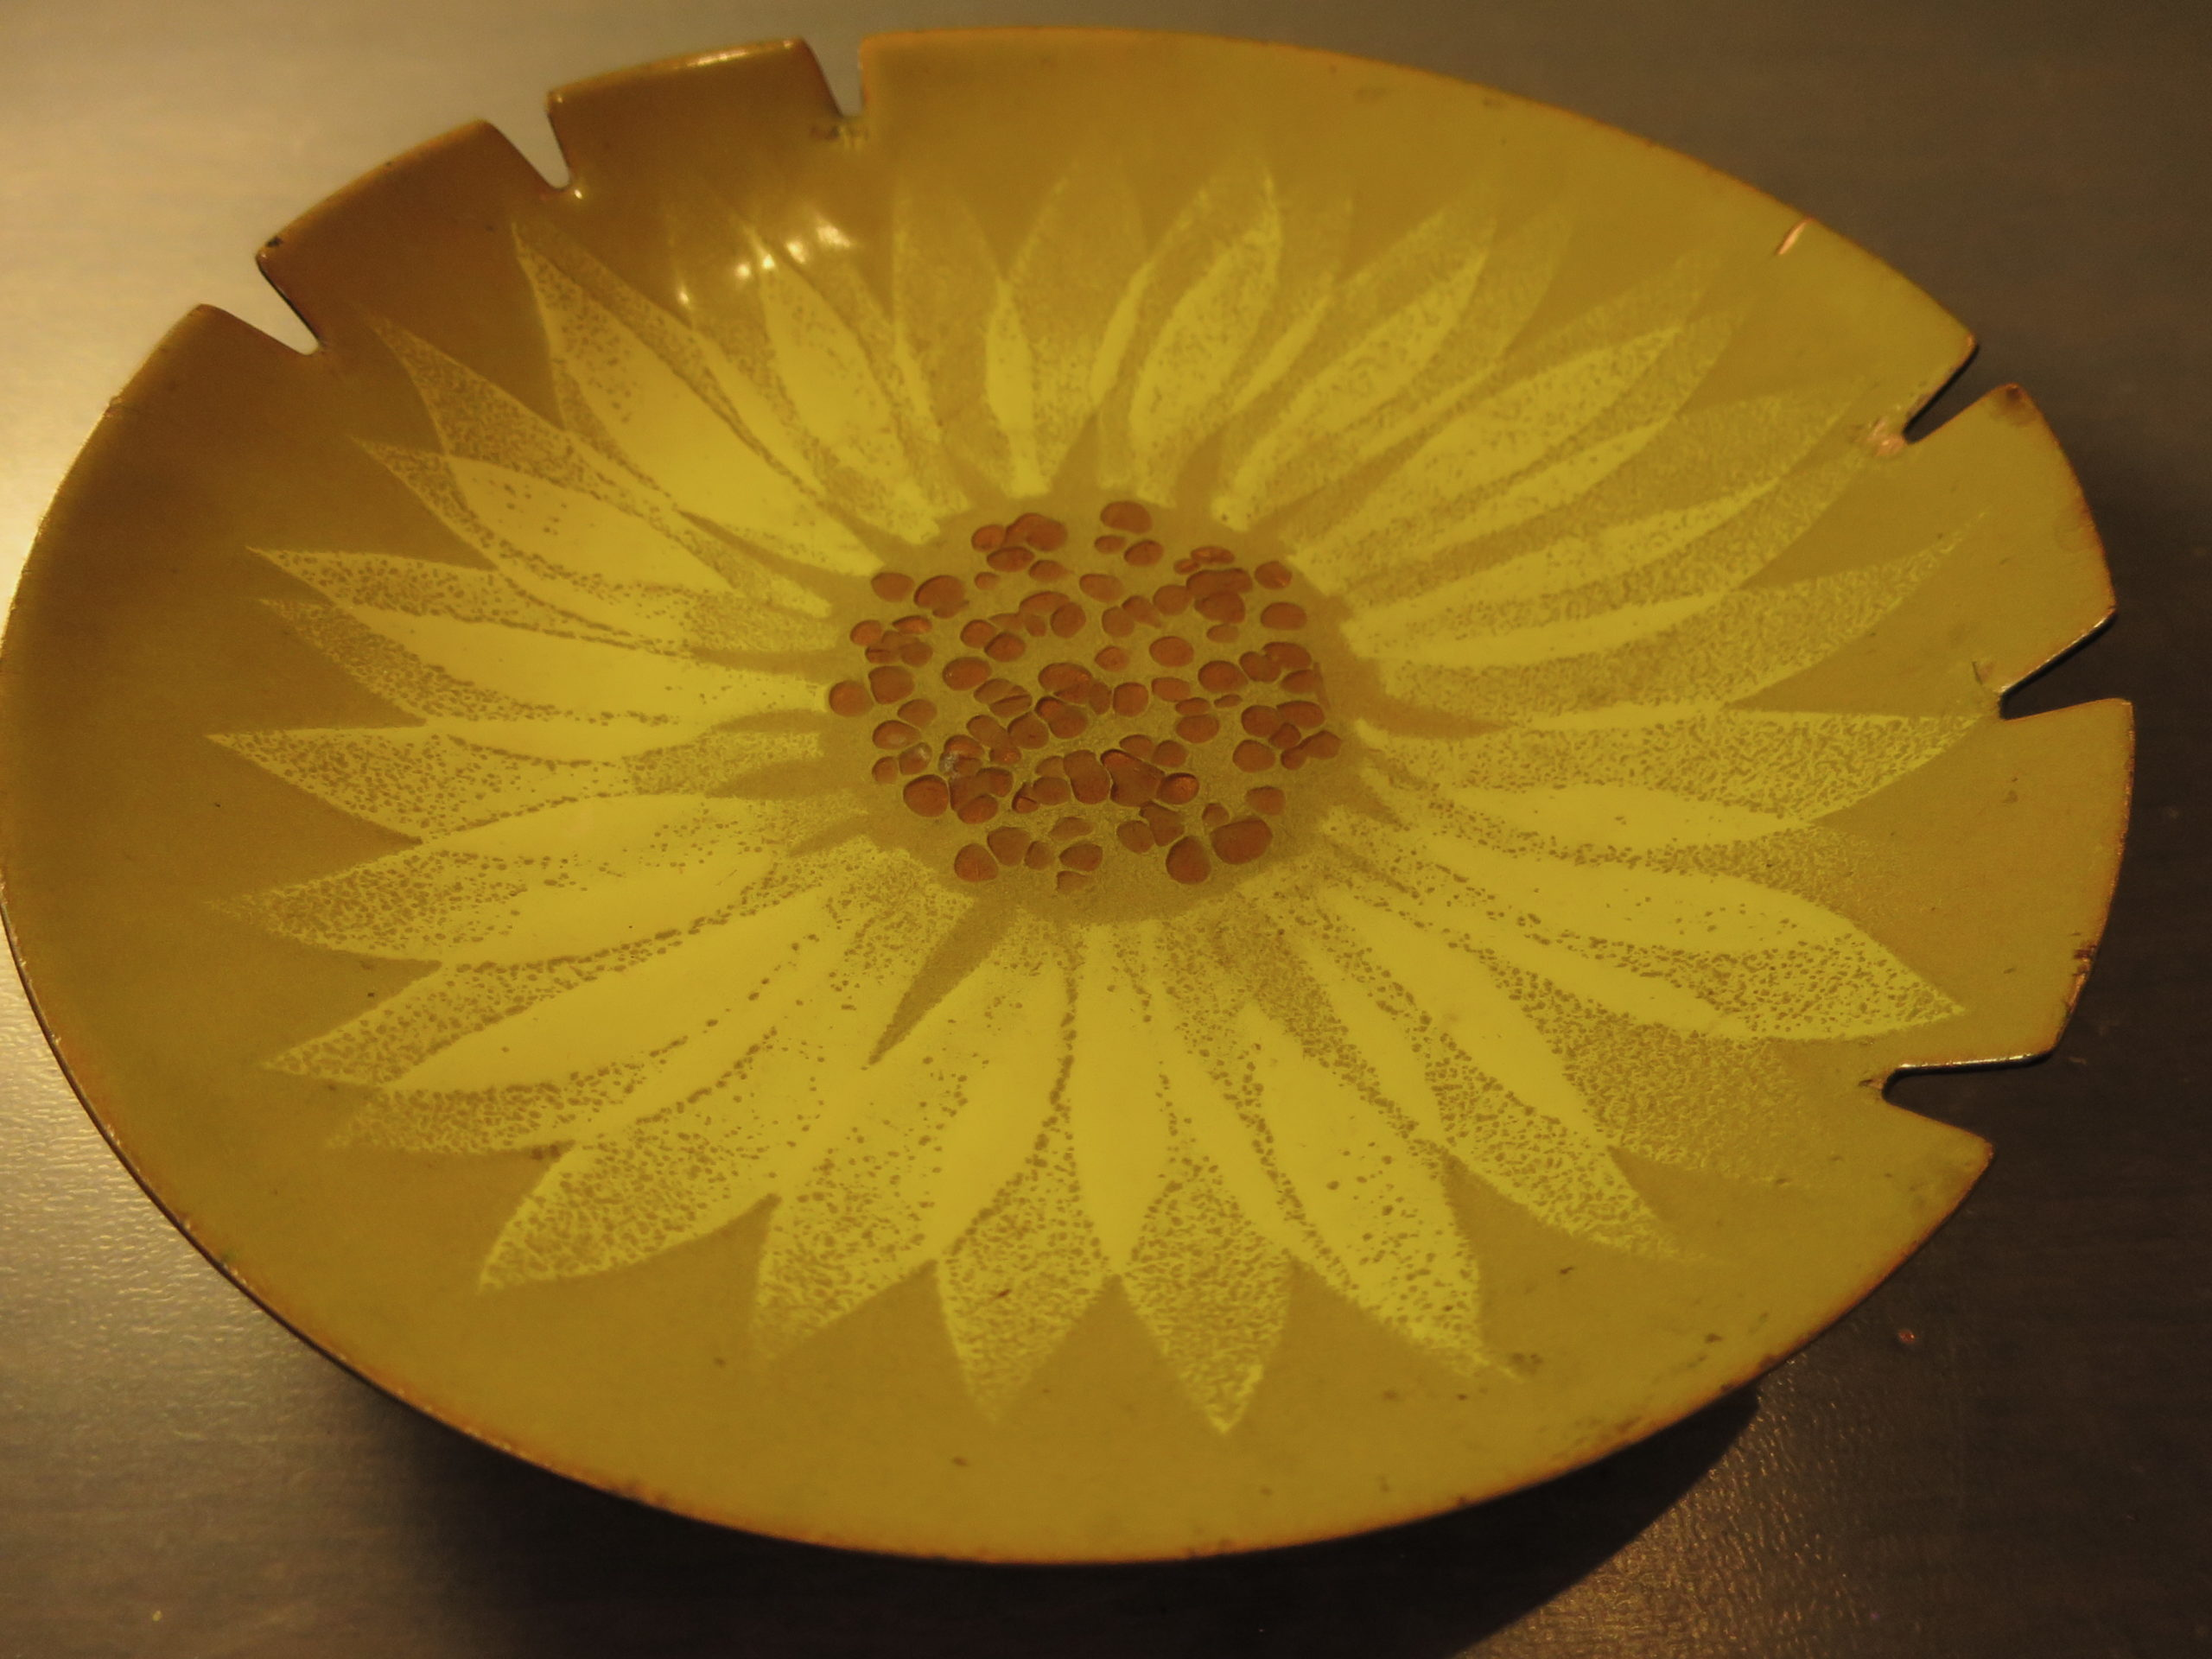 large round enamel ashtray with sunflower design in shades of yellow and orange